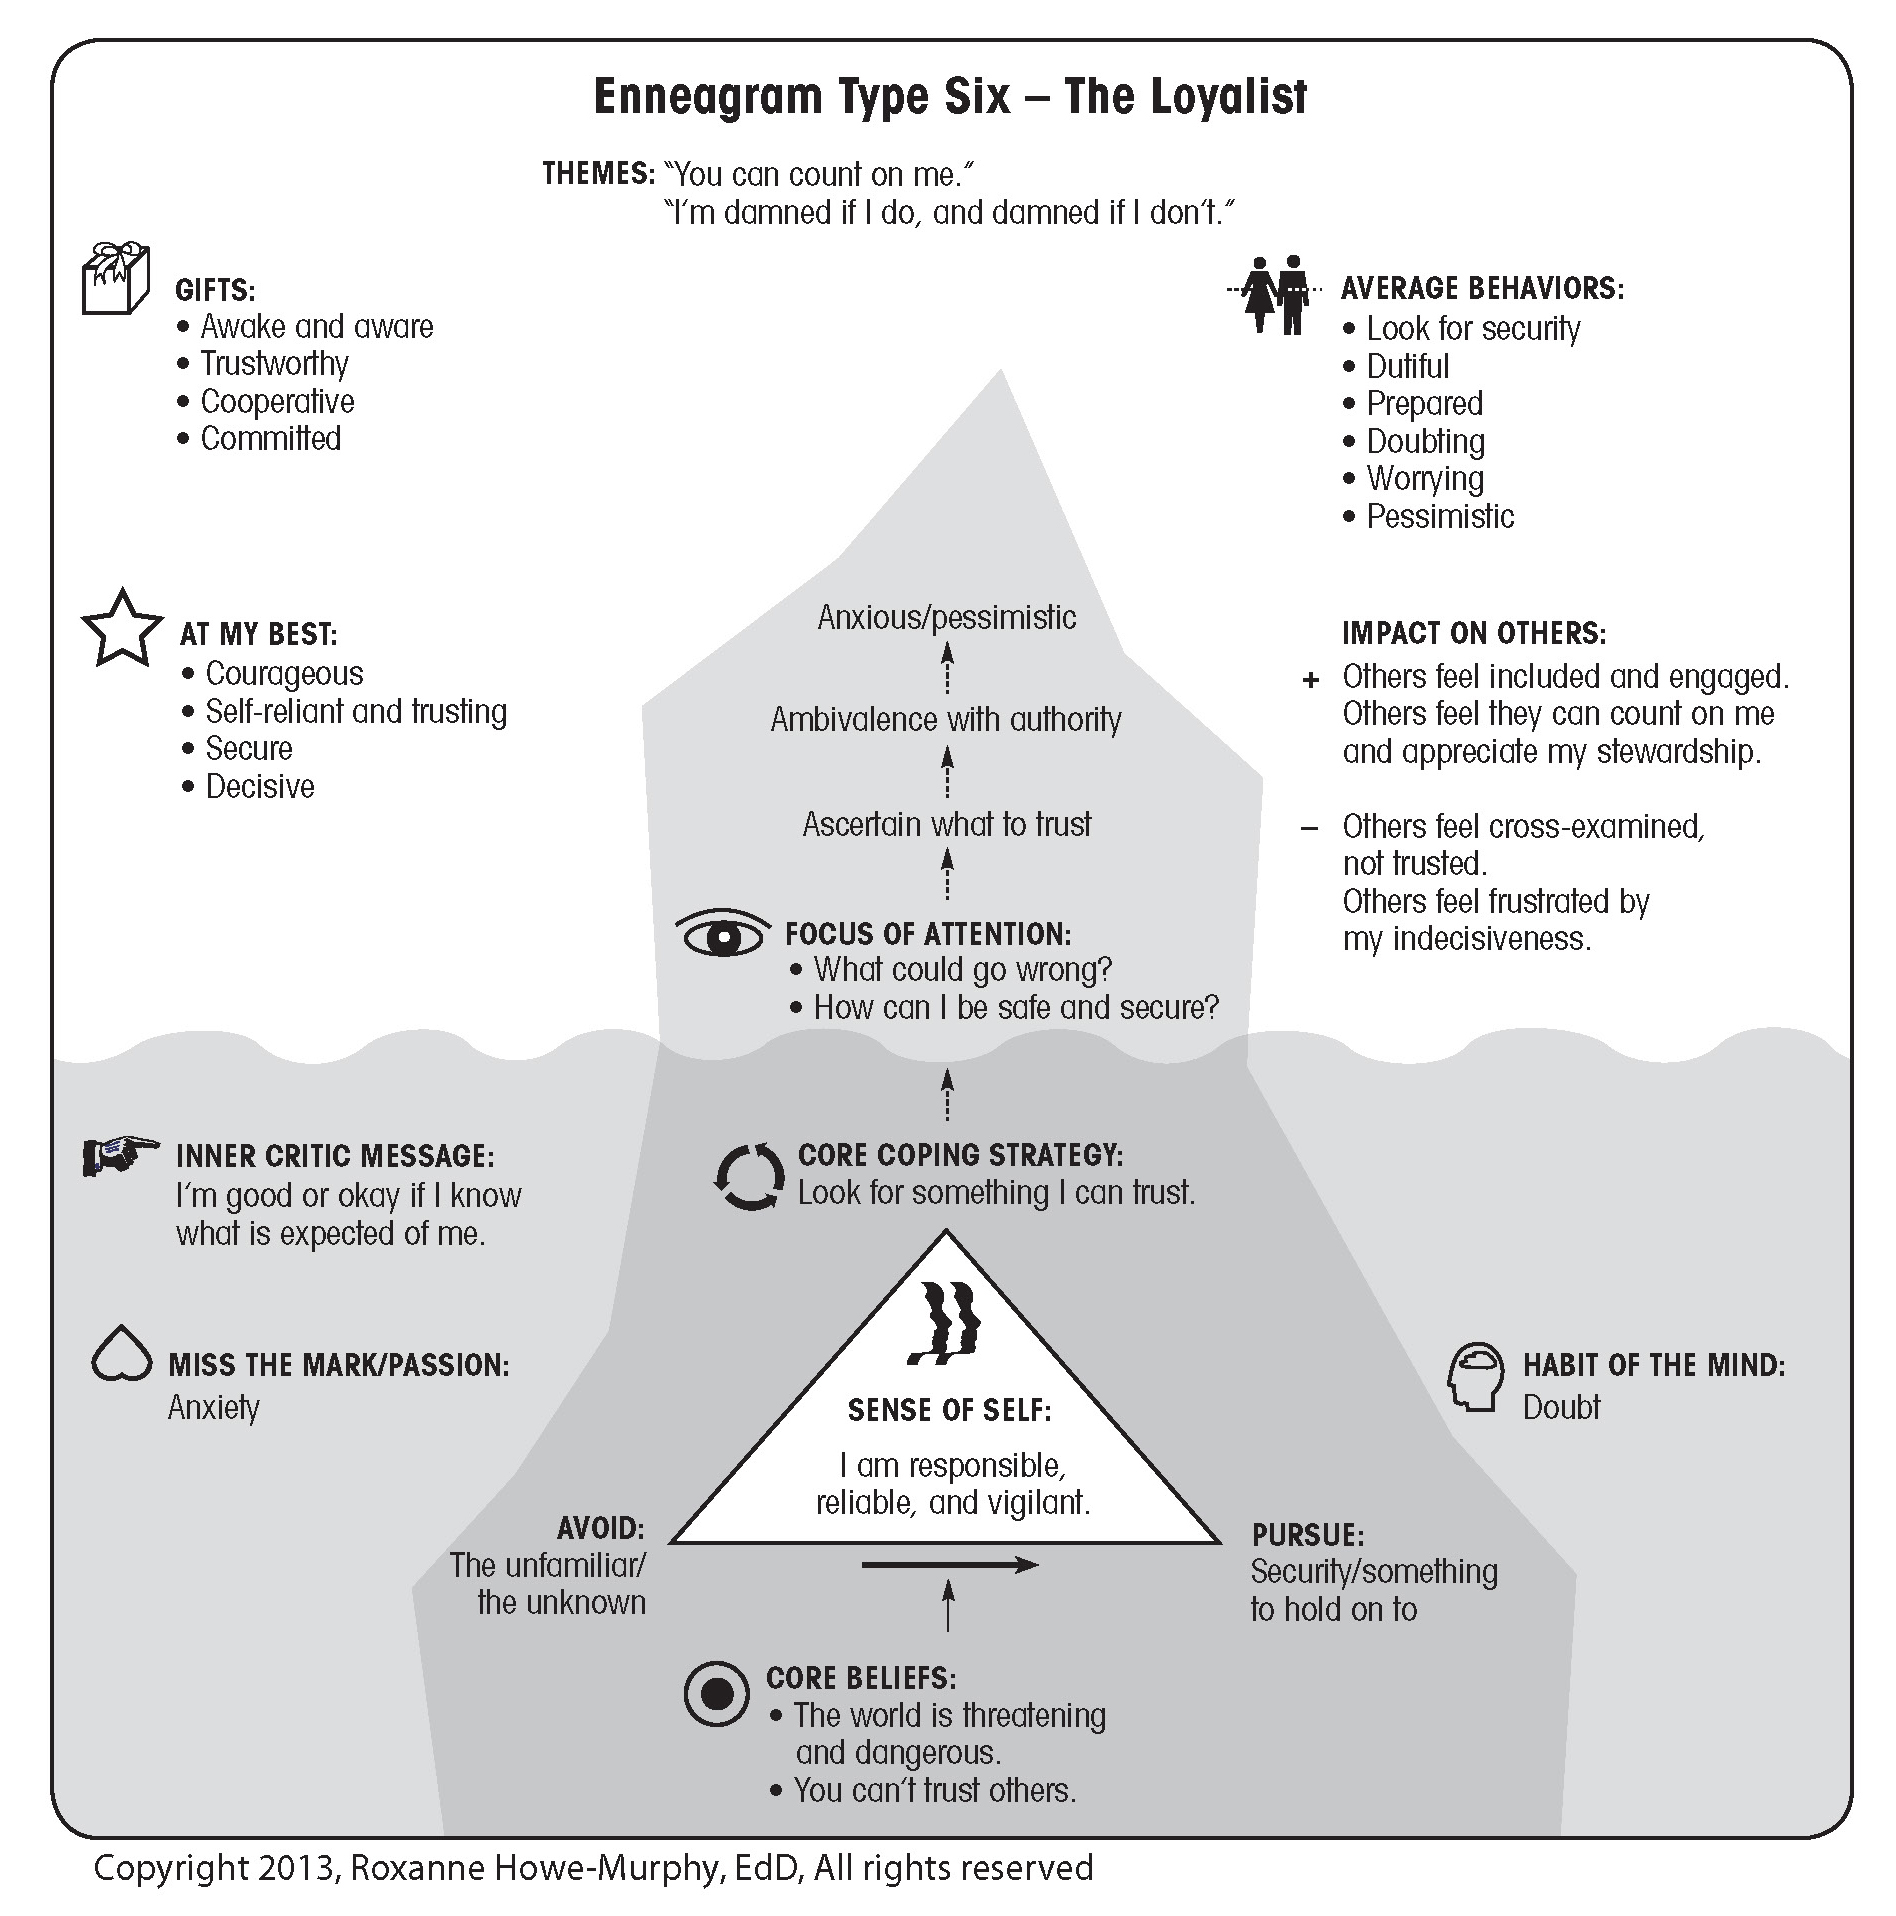 enneagram type 1 and 6 relationship